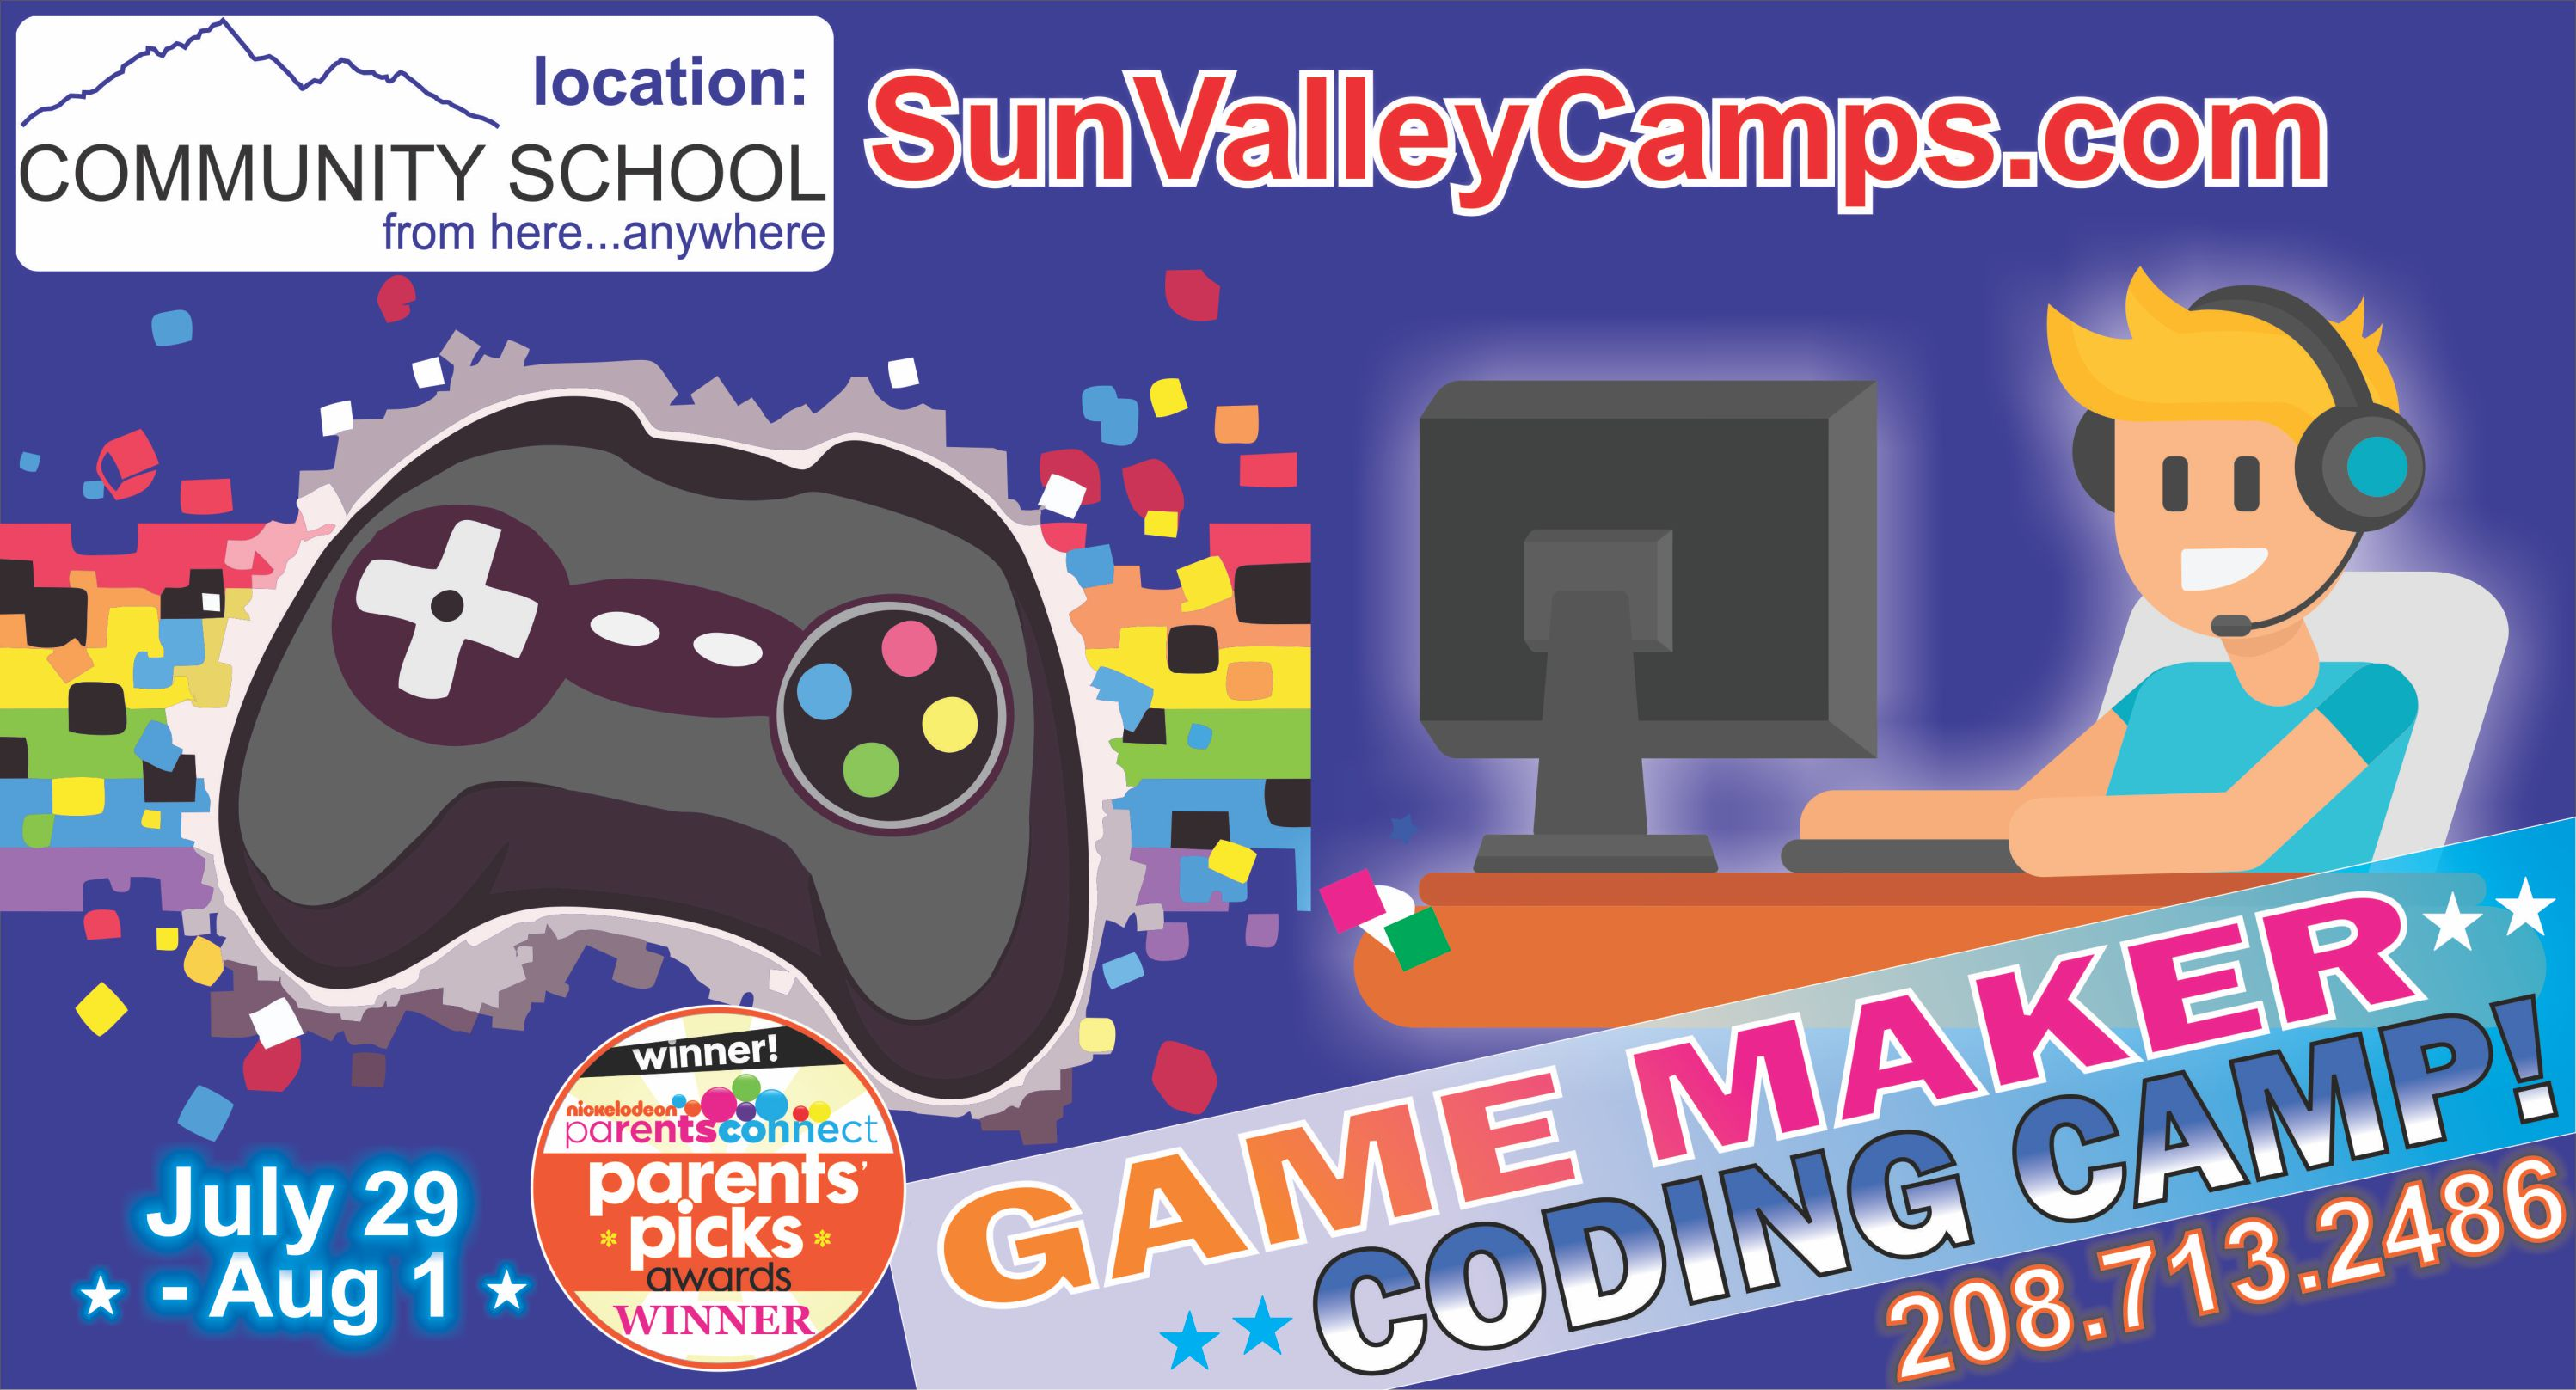 Super-Stars Chess and Game Coding Camp! @ Community School